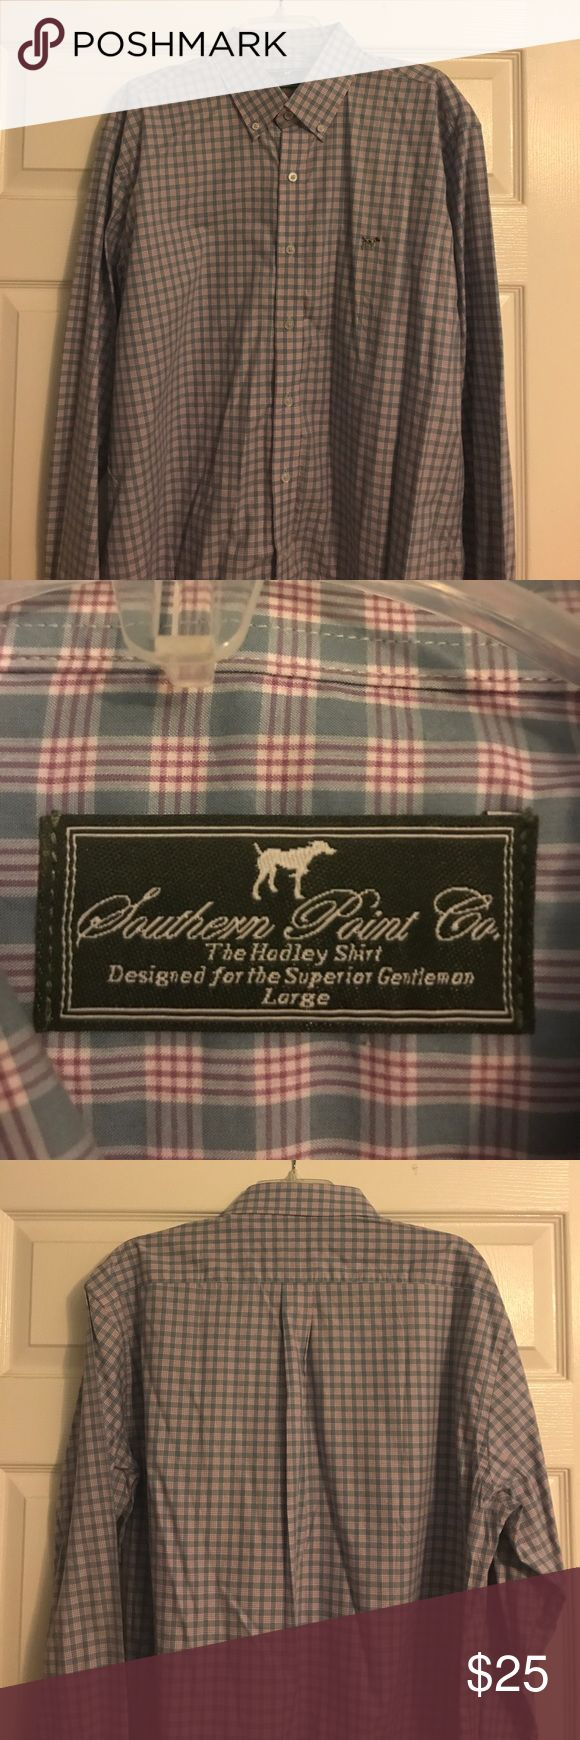 Southern Point Co. Long Sleeve Button Down Shirt Southern Point Co Sport Shirts are crafted for the superior gentleman seeking to exemplify the southern lifestyle. We have combined luxury and style in our shirts. Designed with the highest blend of lightweight Pima cotton, the Hadley Shirt sets itself apart from others.   custom designed pattern, 100% Pima Cotton, 60/1 2 ply, embroidered Greyton™ logo, laser engraved buttons extra button closure to make sure shirt stays tucked in, imported…